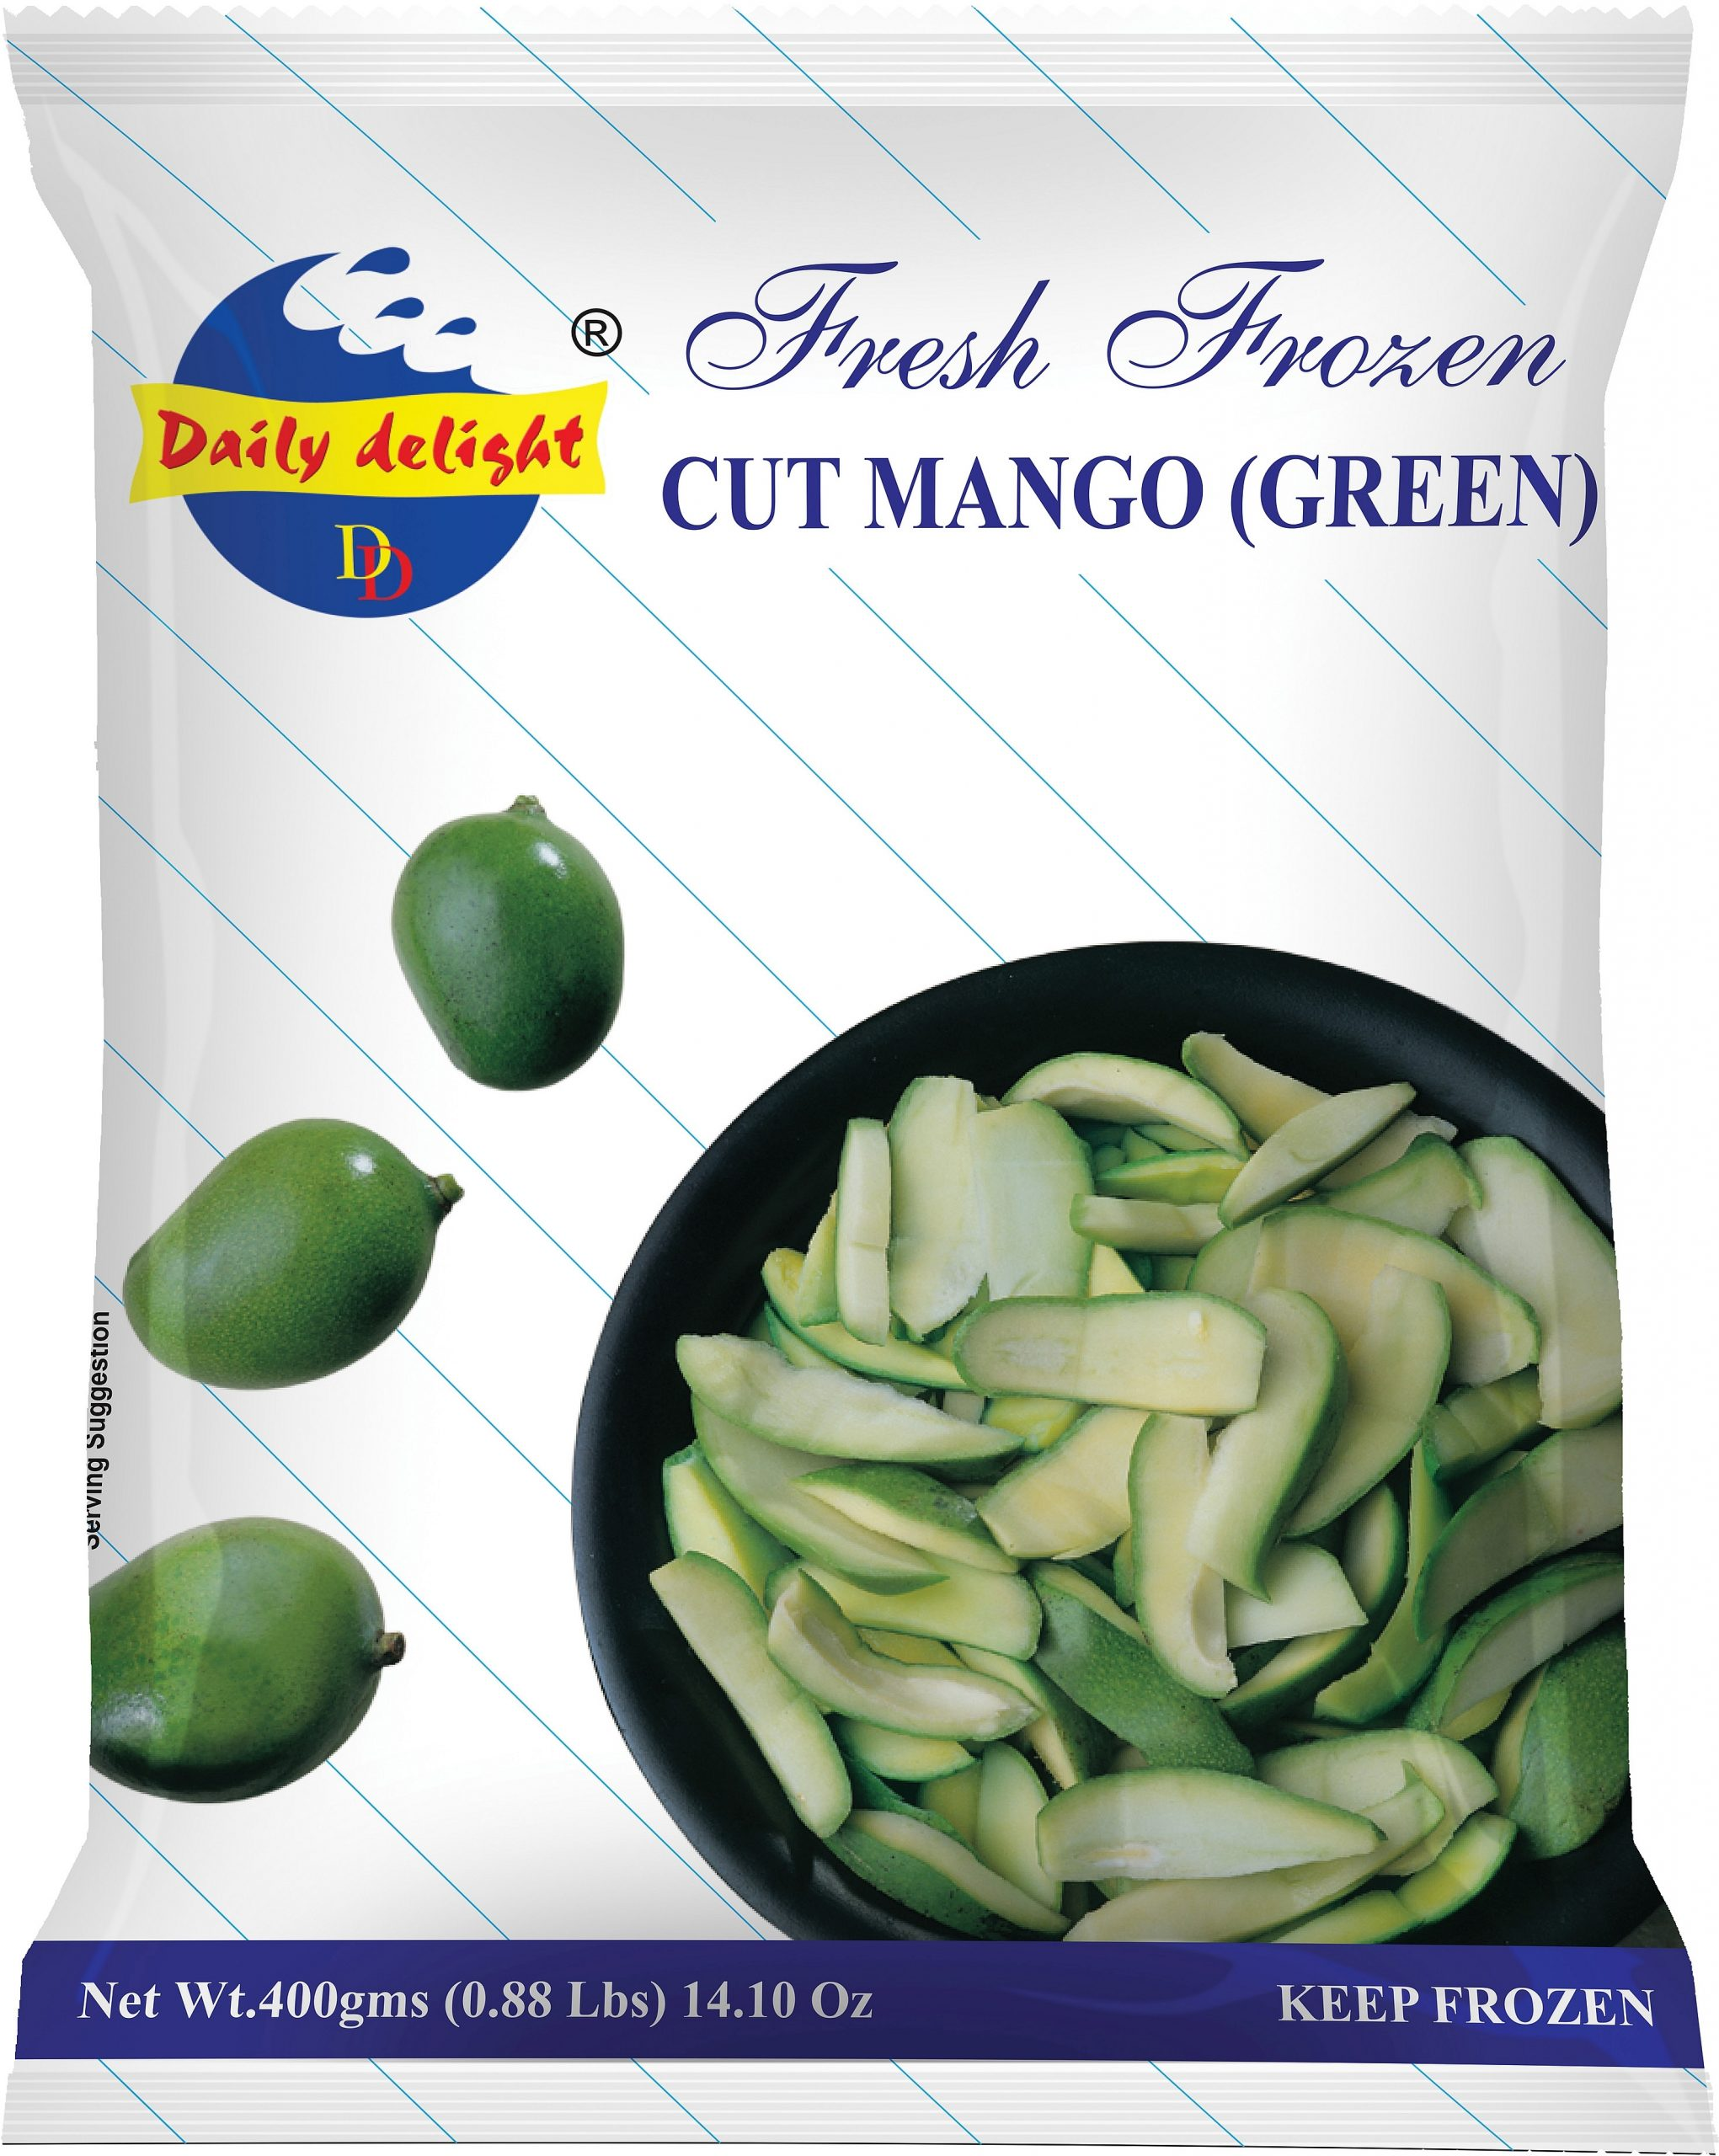 Daily Delight Cut Mango Green